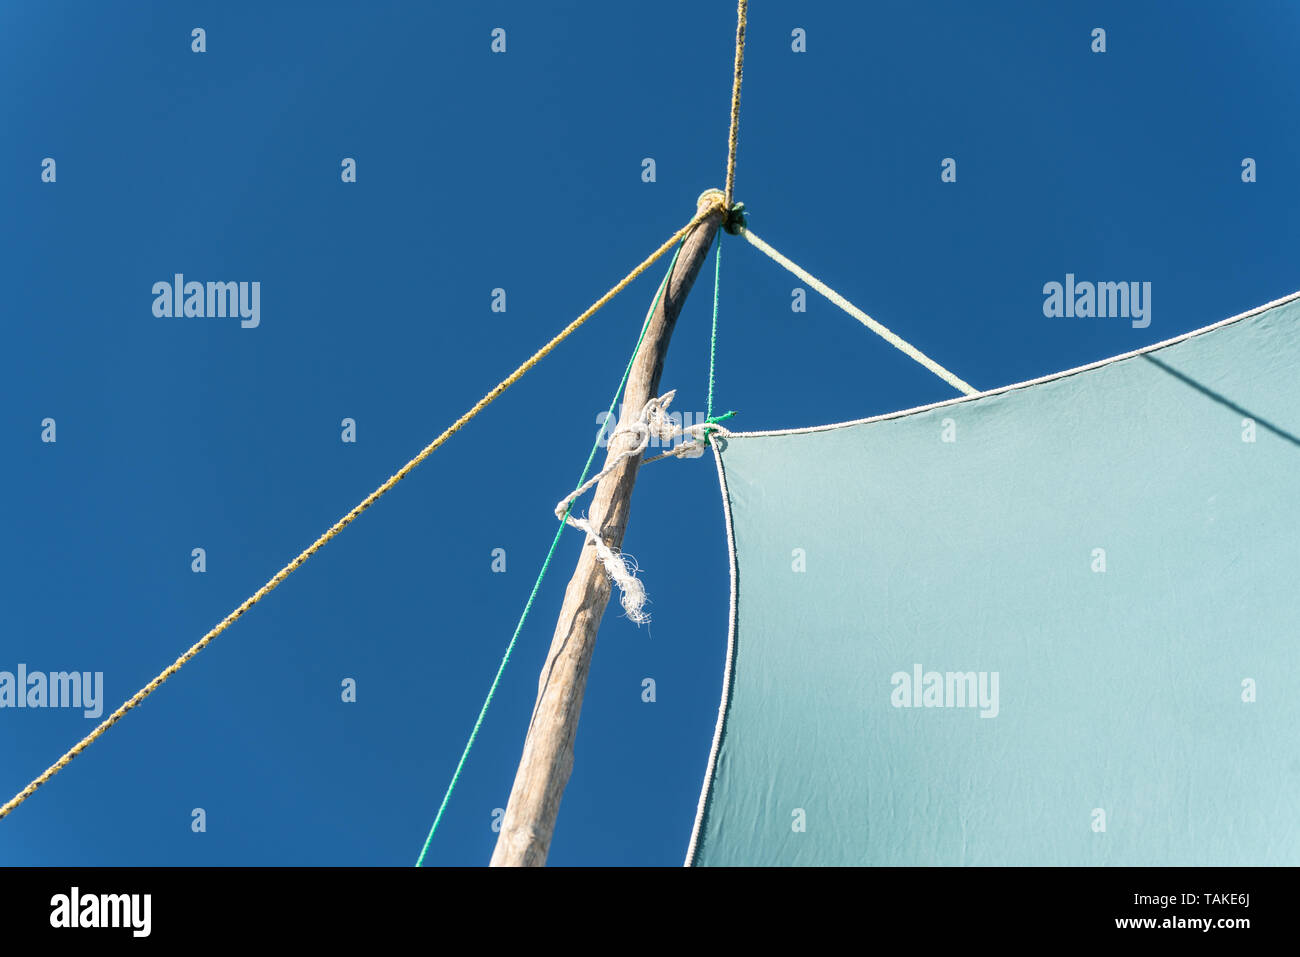 Detail on pirogue - small boat used in Madagascar - mainsail jib blea sky in background - Stock Image